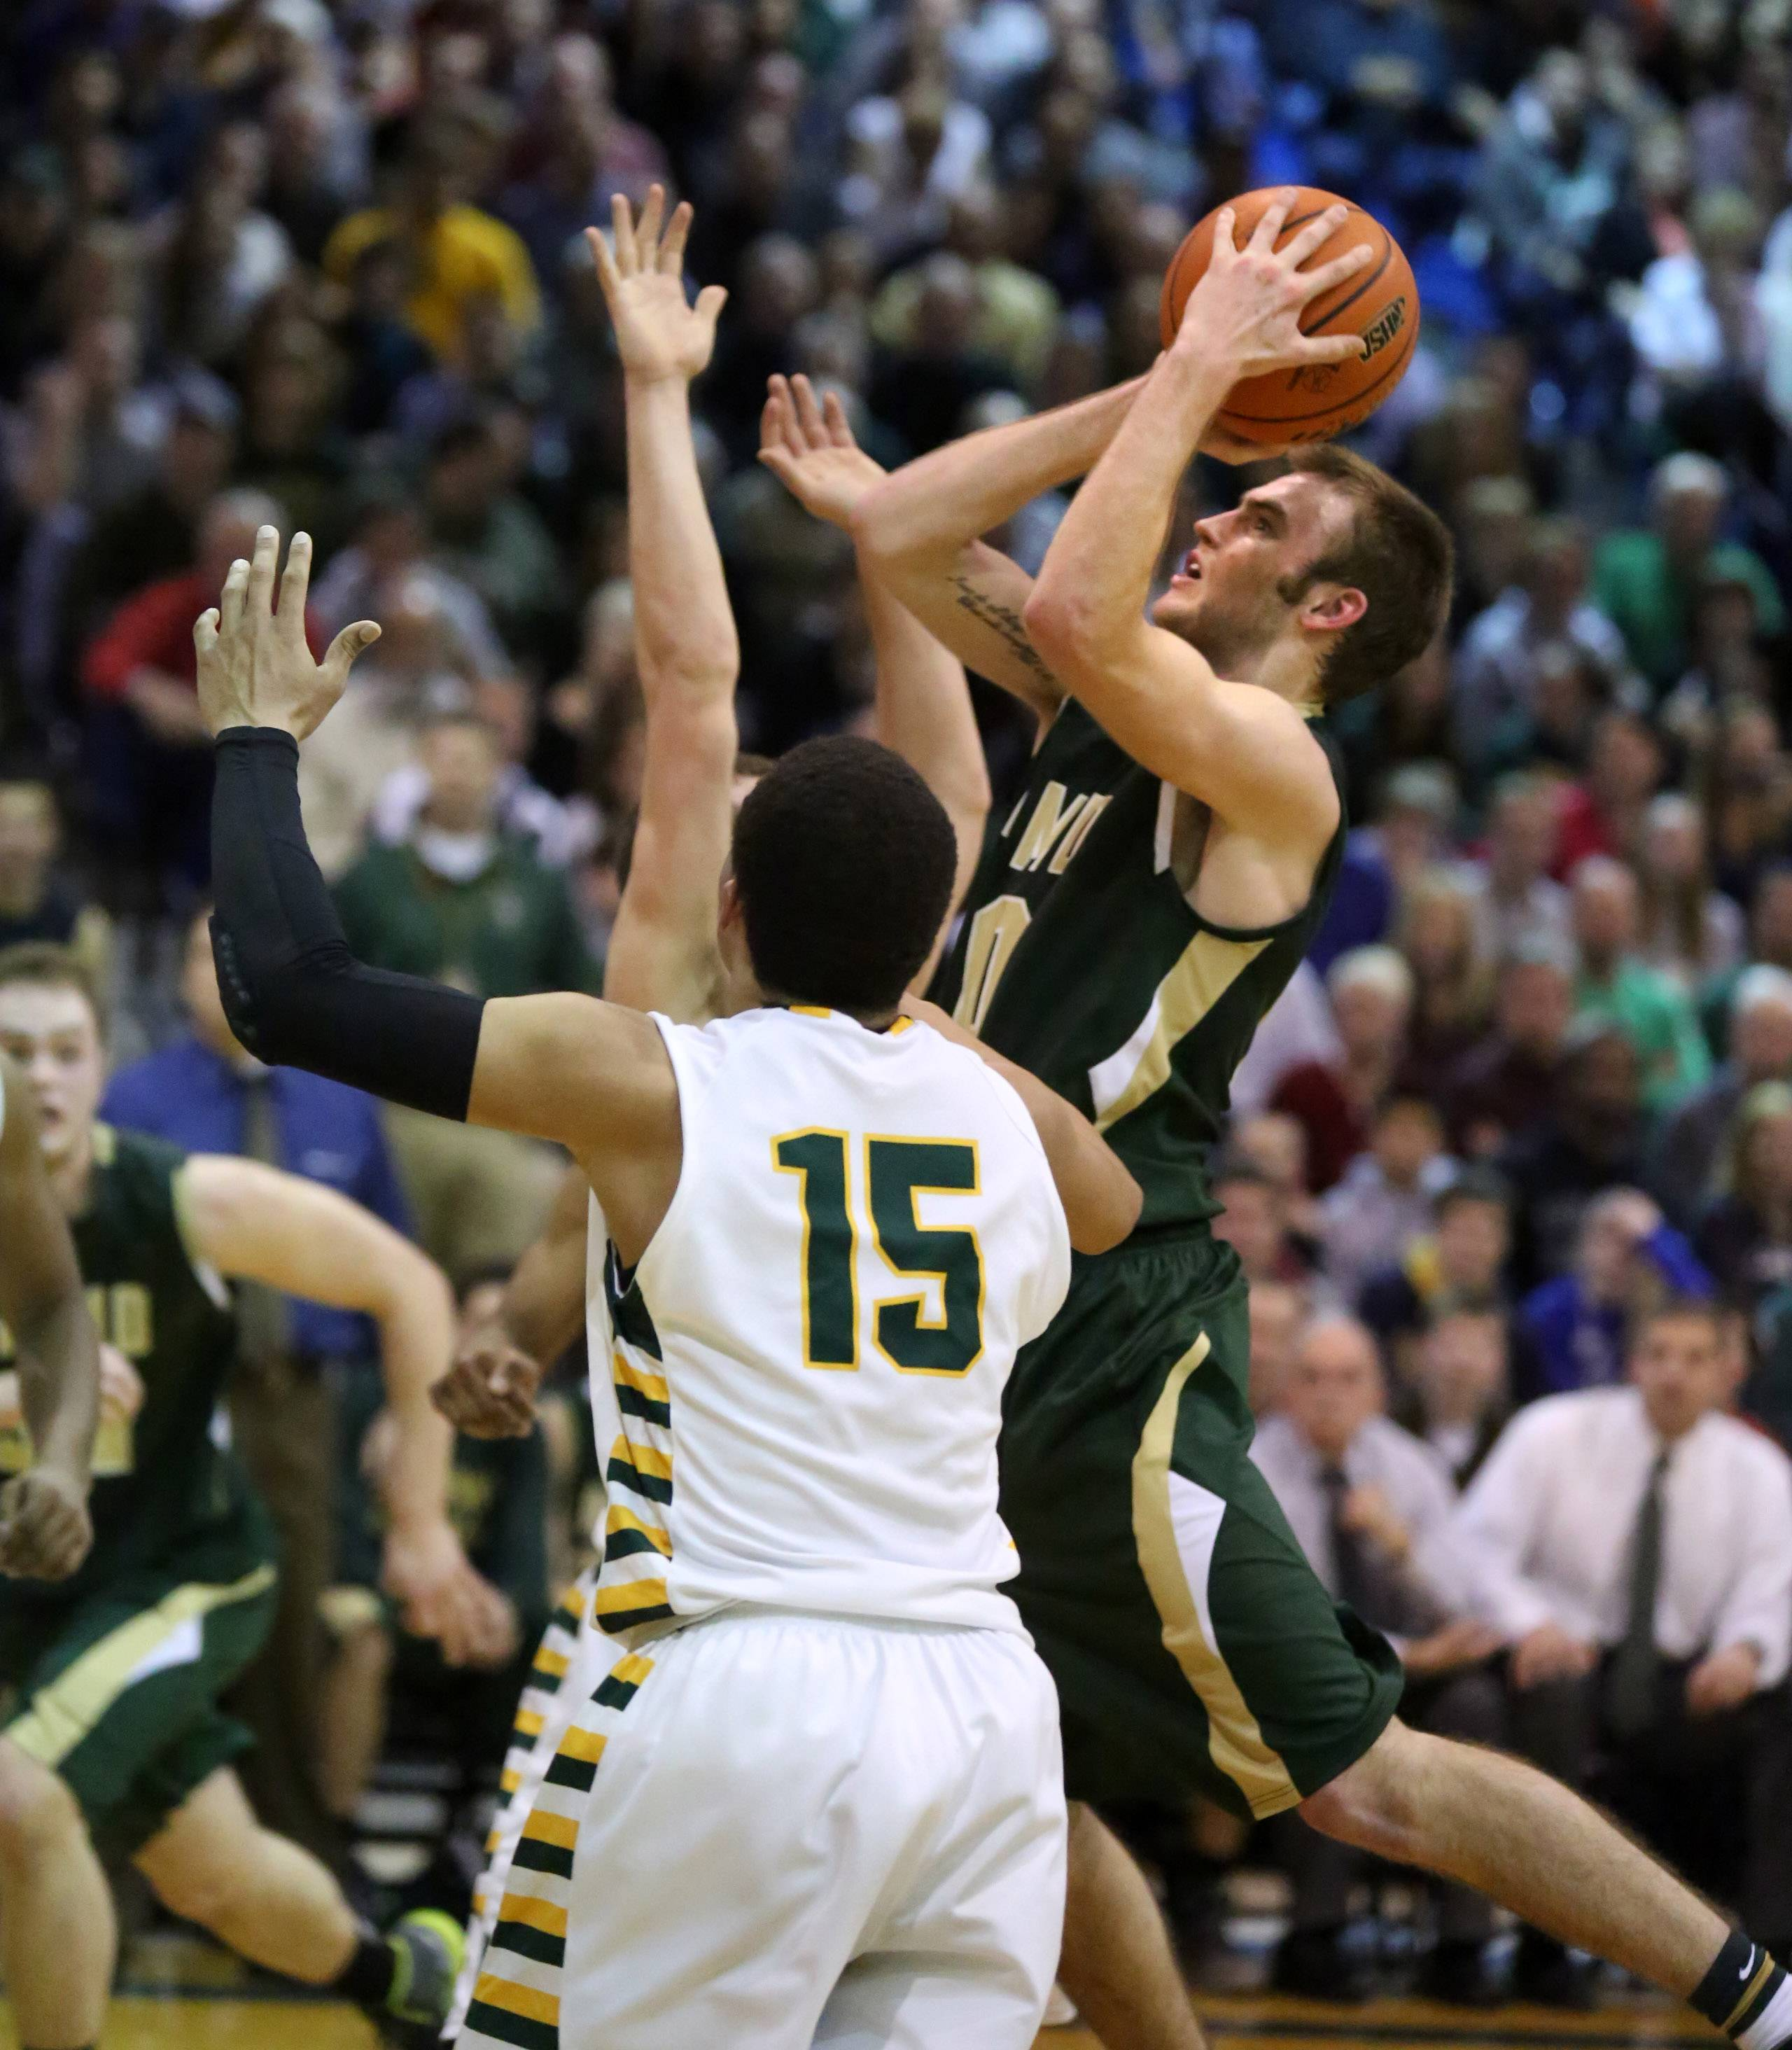 Fremd guard Raymond Riley Glassmann shoots over Stevenson defender Jalen Brunson.